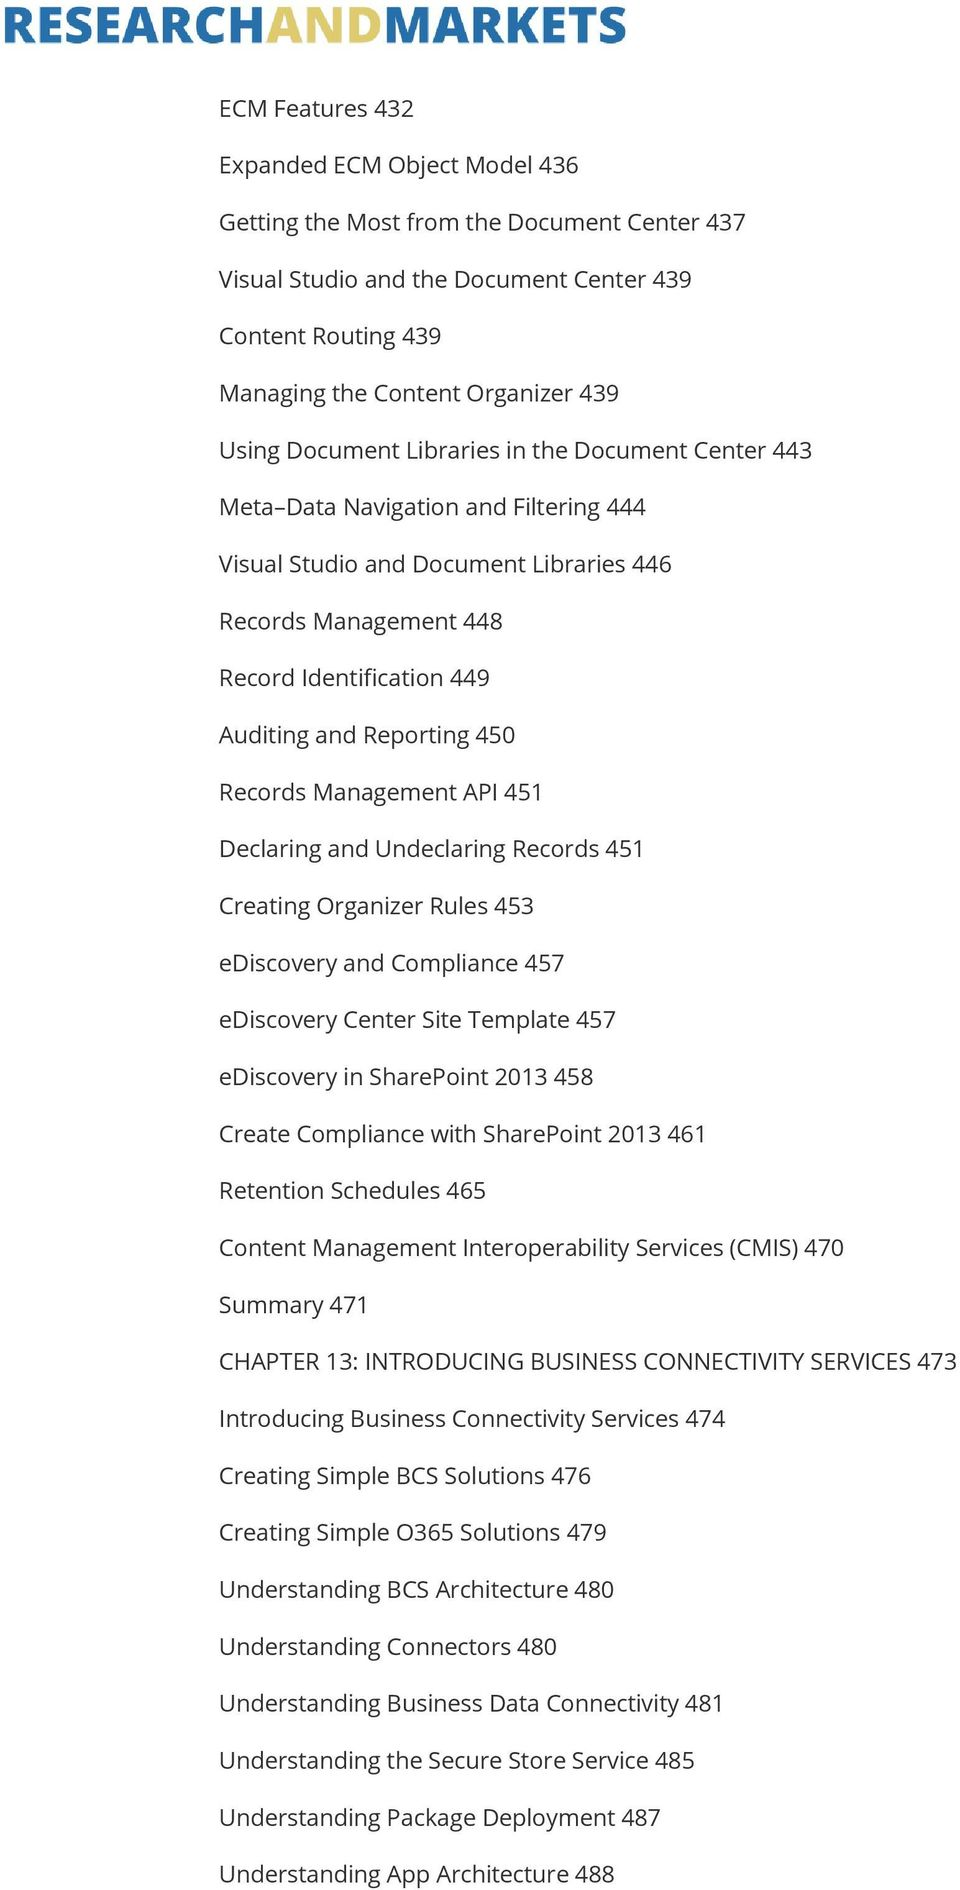 450 Records Management API 451 Declaring and Undeclaring Records 451 Creating Organizer Rules 453 ediscovery and Compliance 457 ediscovery Center Site Template 457 ediscovery in SharePoint 2013 458